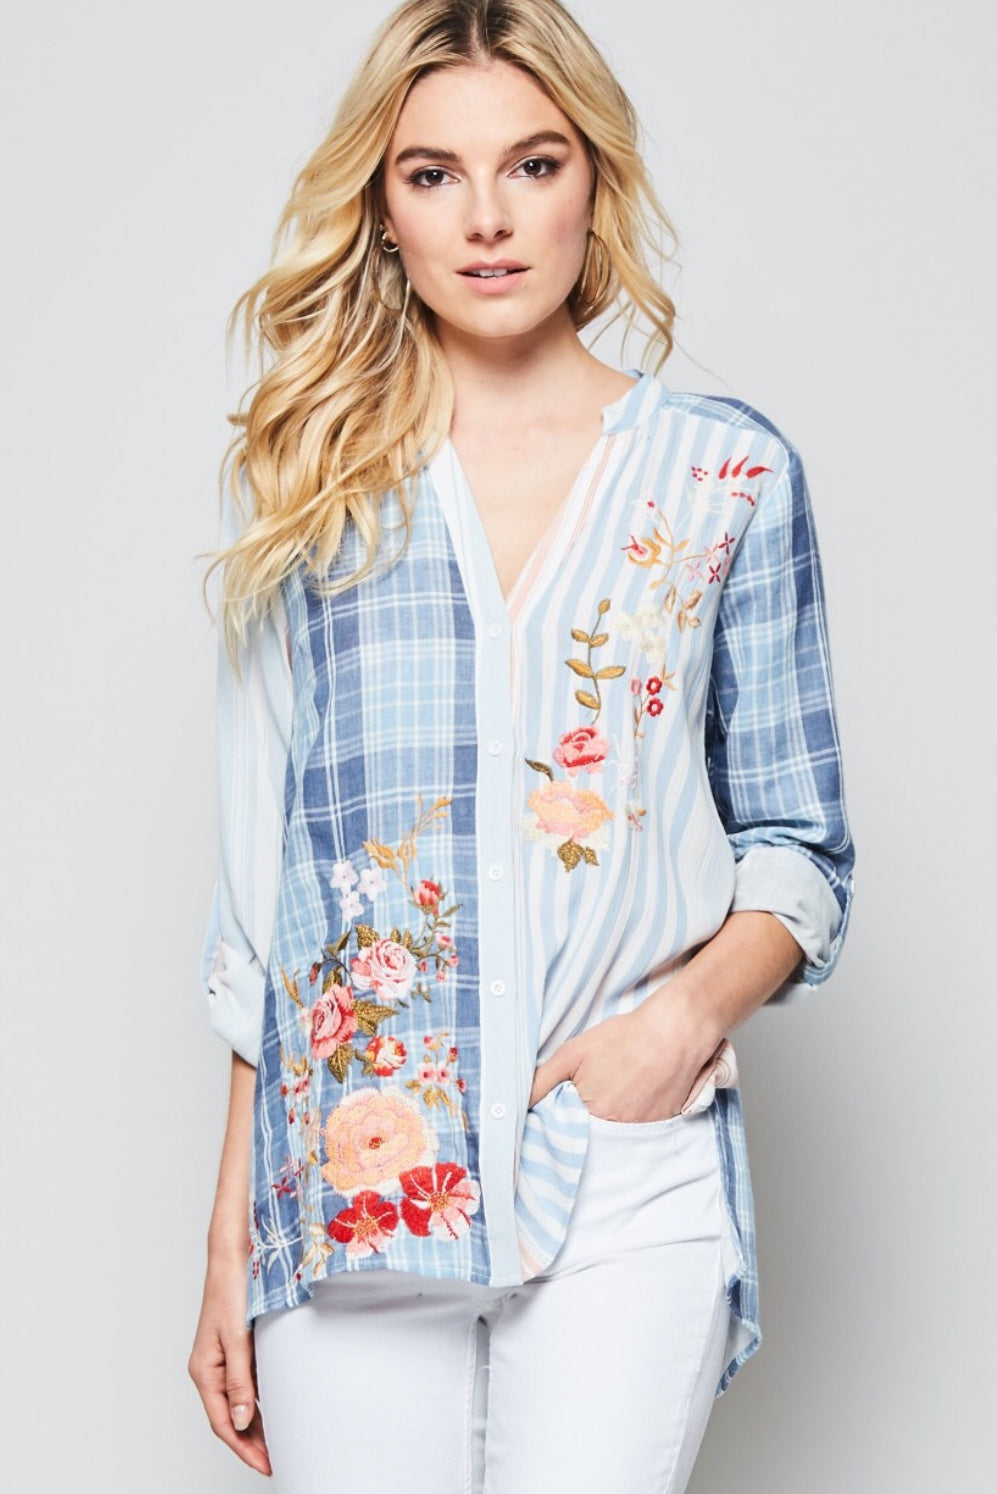 Adaline Floral Embroidered Top - Pastel